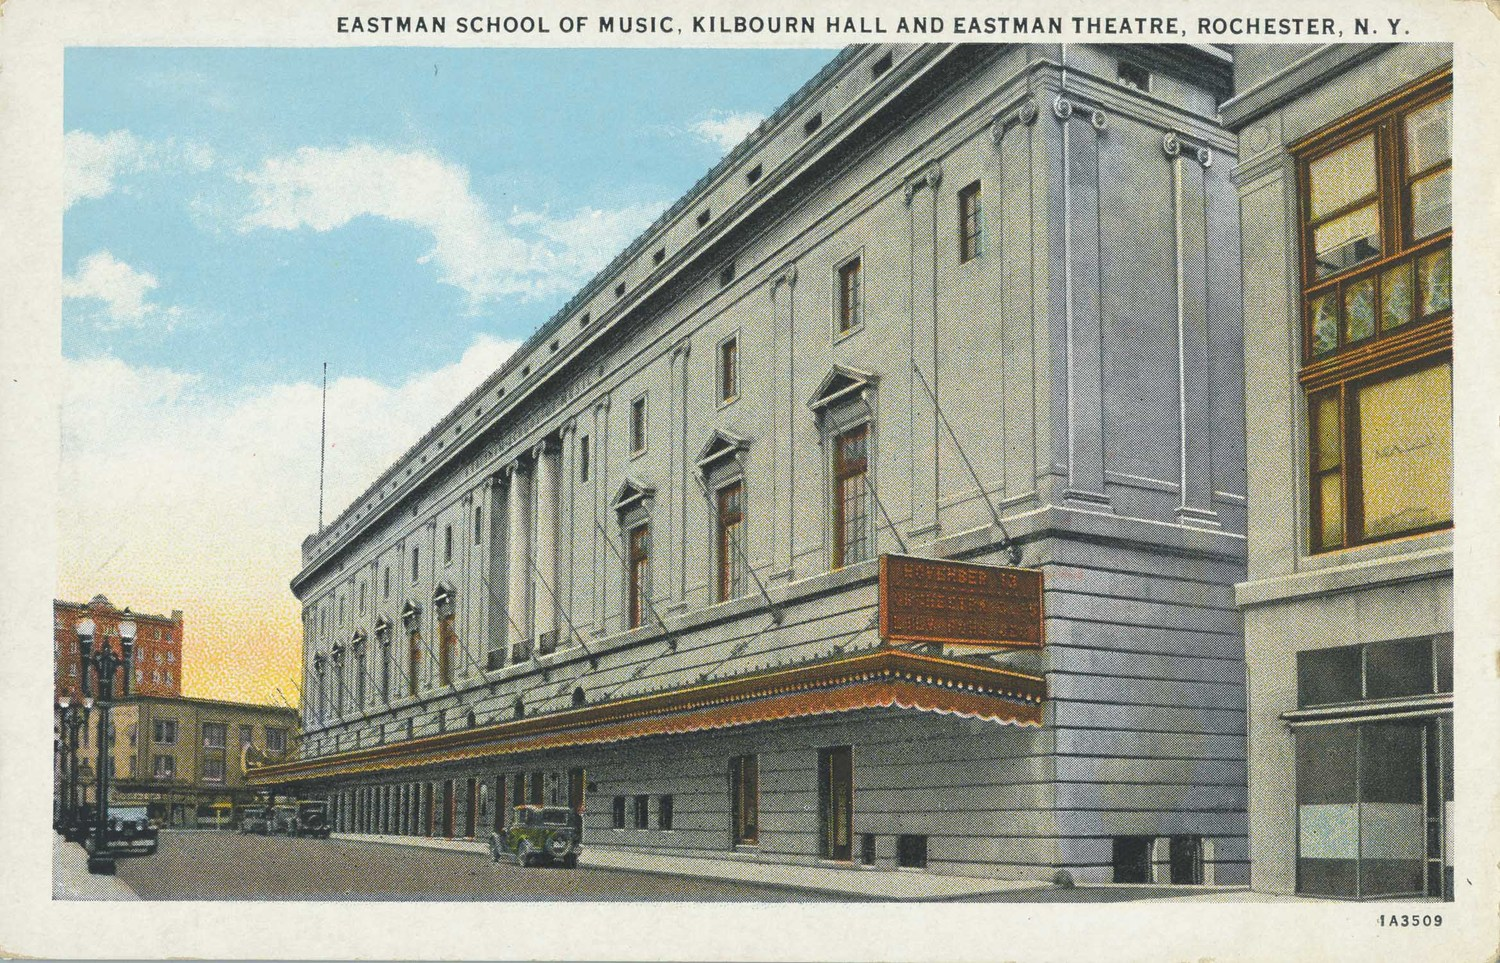 Eastman School of Music, Kilbourn Hall and Eastman Theatre, Rochester, N.Y.